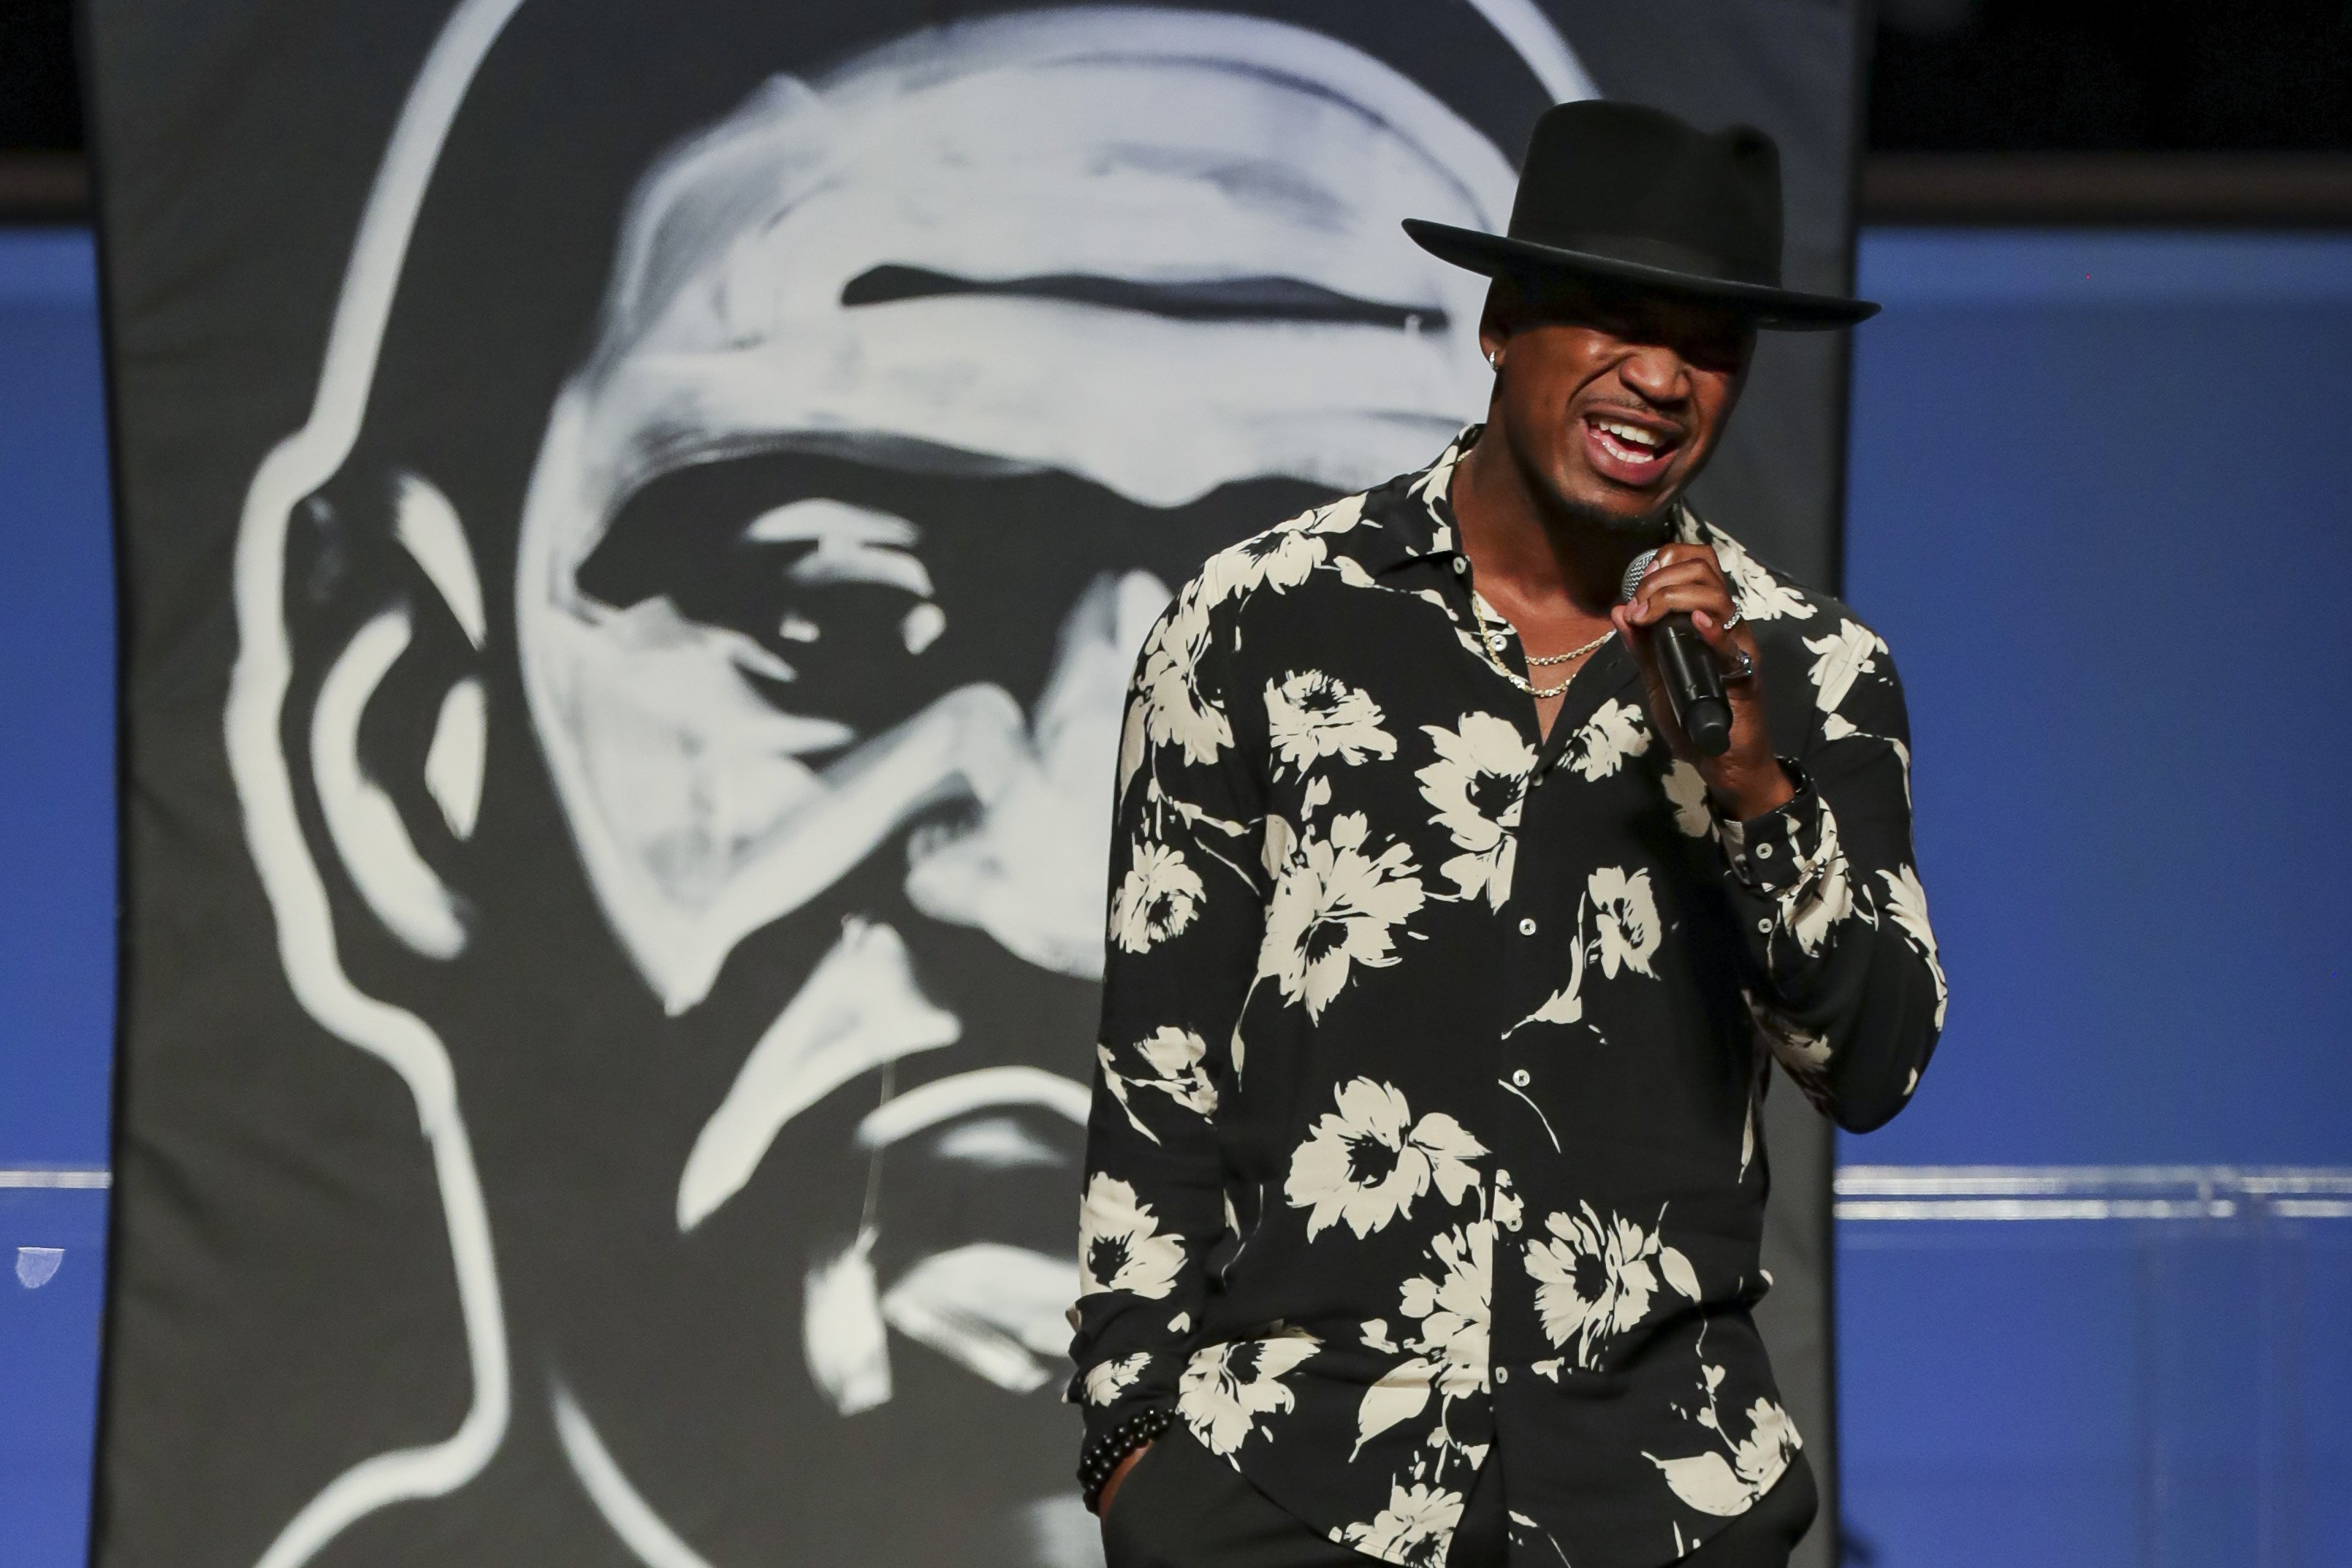 Ne-Yo performs during George Floyd's funeral at The Fountain of Praise Church on June 9, 2020, in Houston, Texas | Photo: Godofredo A. Vásquez -Pool/Getty Images